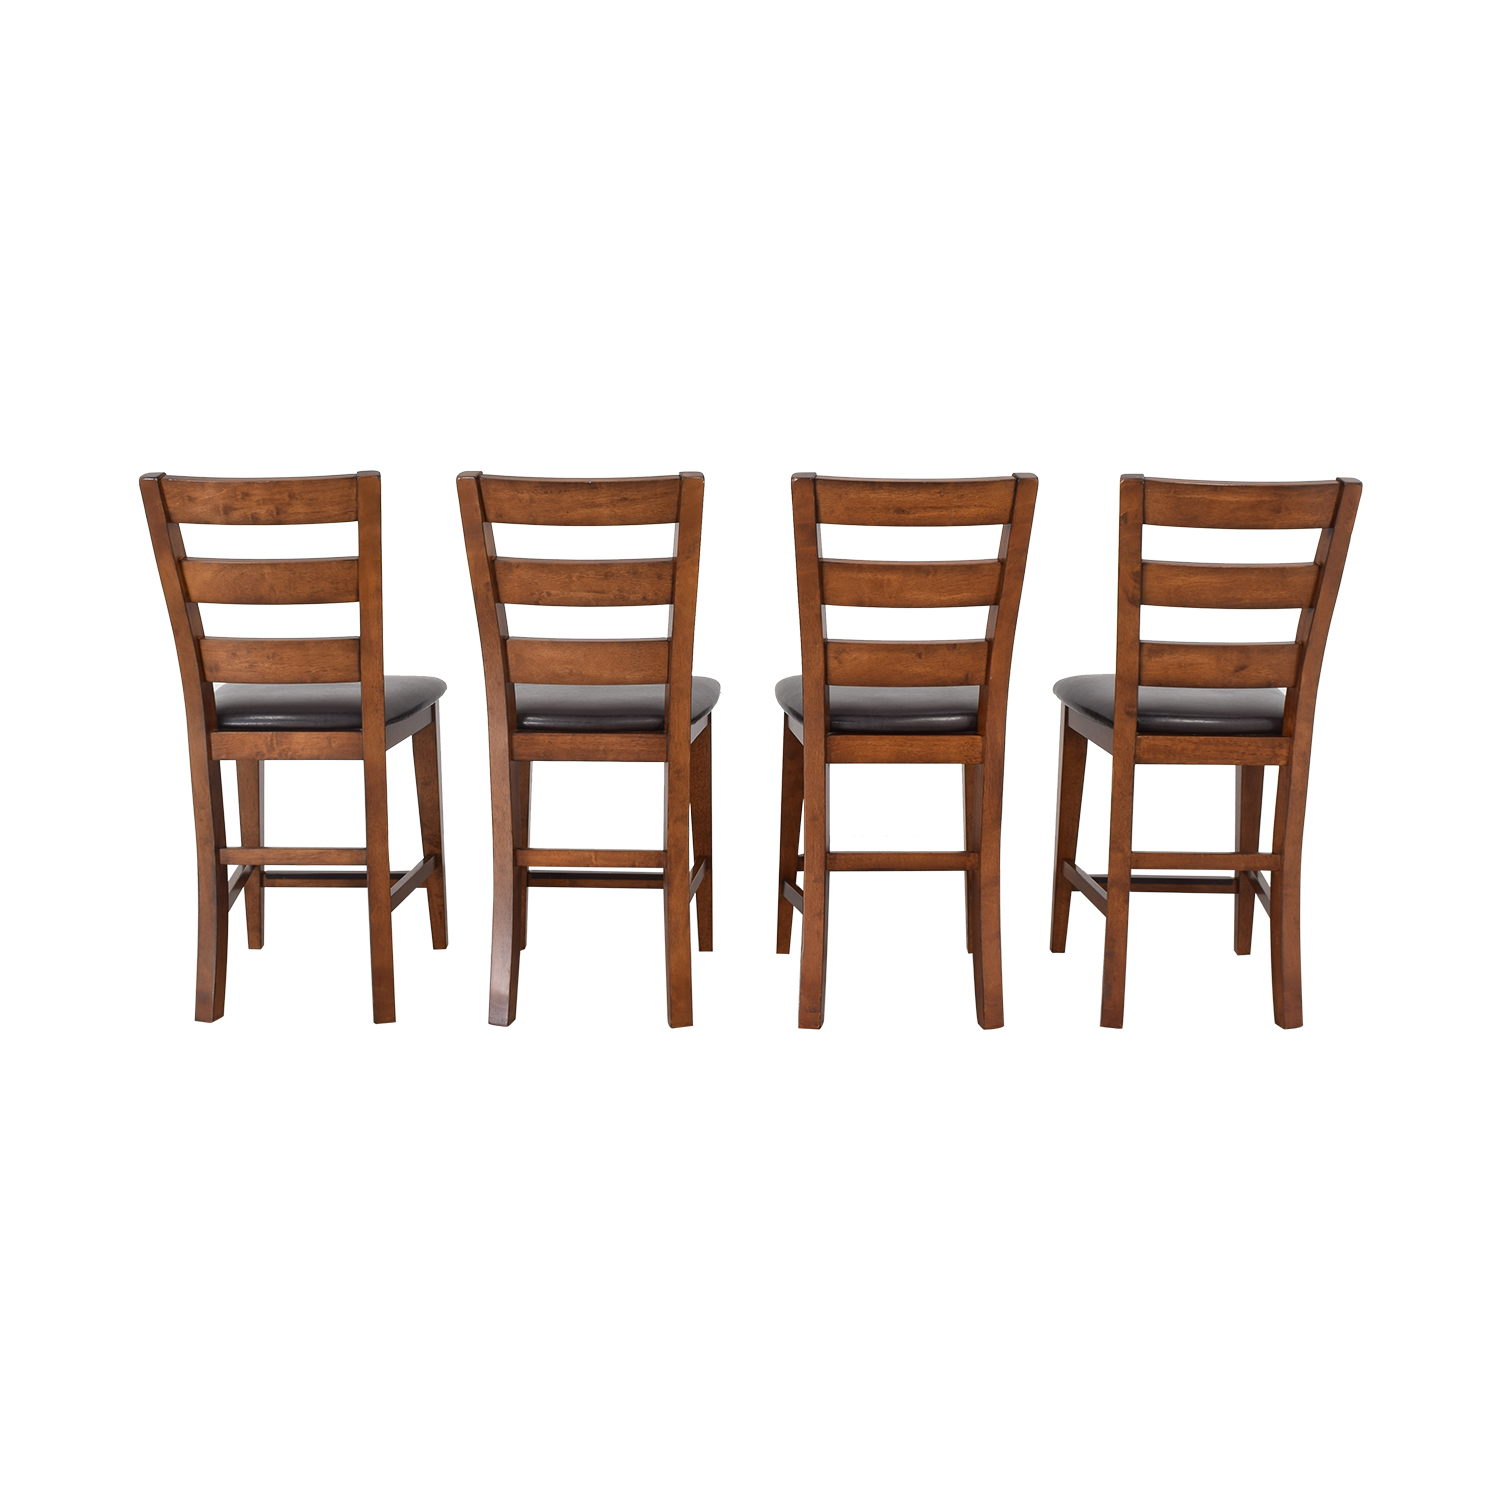 shop American Signature American Signature Ladder Back Dining Chairs online